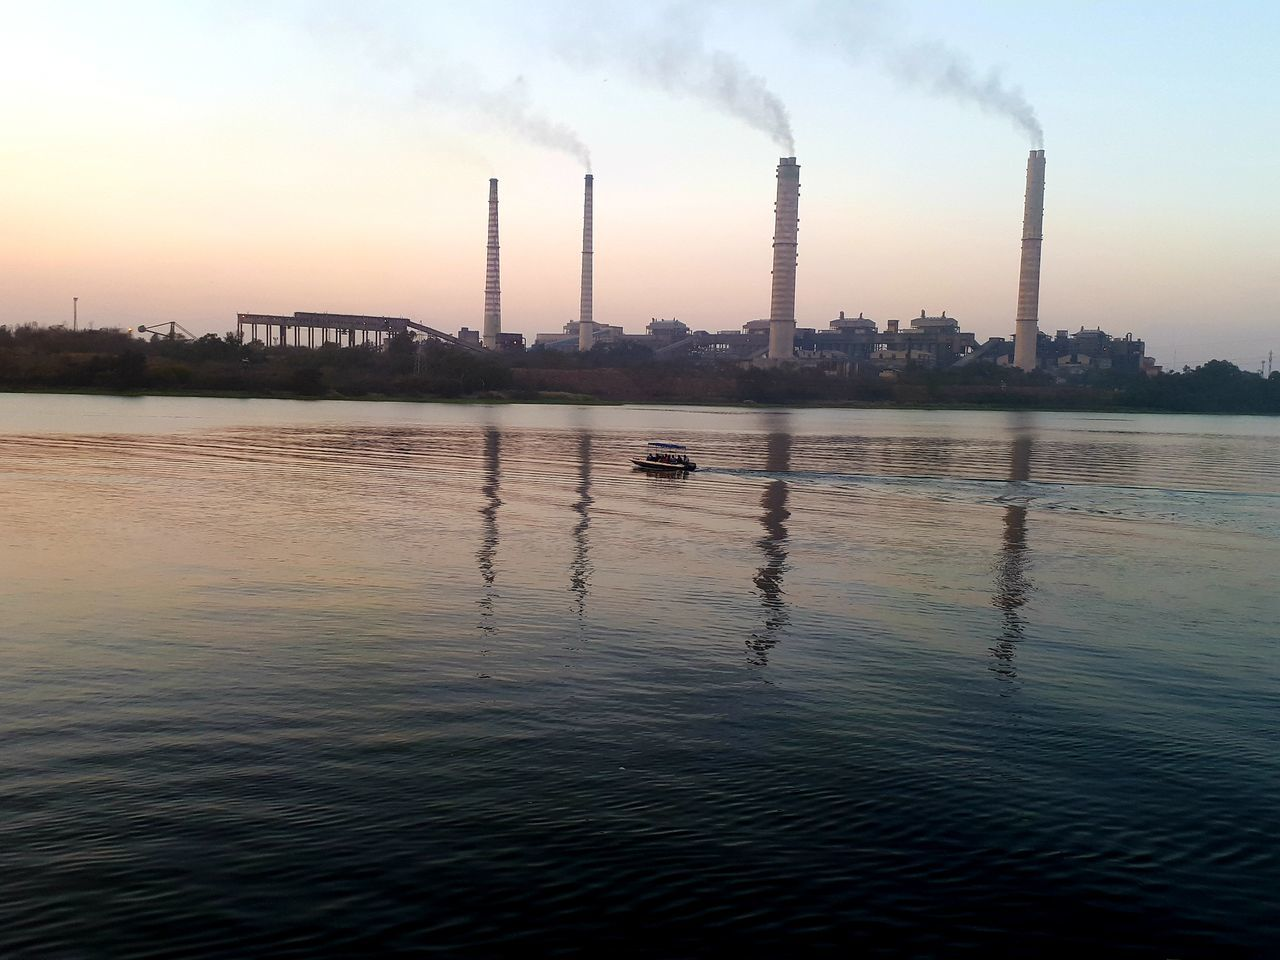 factory, smoke stack, building exterior, pollution, industry, water, environmental issues, sky, smoke - physical structure, built structure, emitting, architecture, air pollution, reflection, waterfront, environment, chimney, smoke, nature, no people, fumes, outdoors, atmospheric, cooling tower